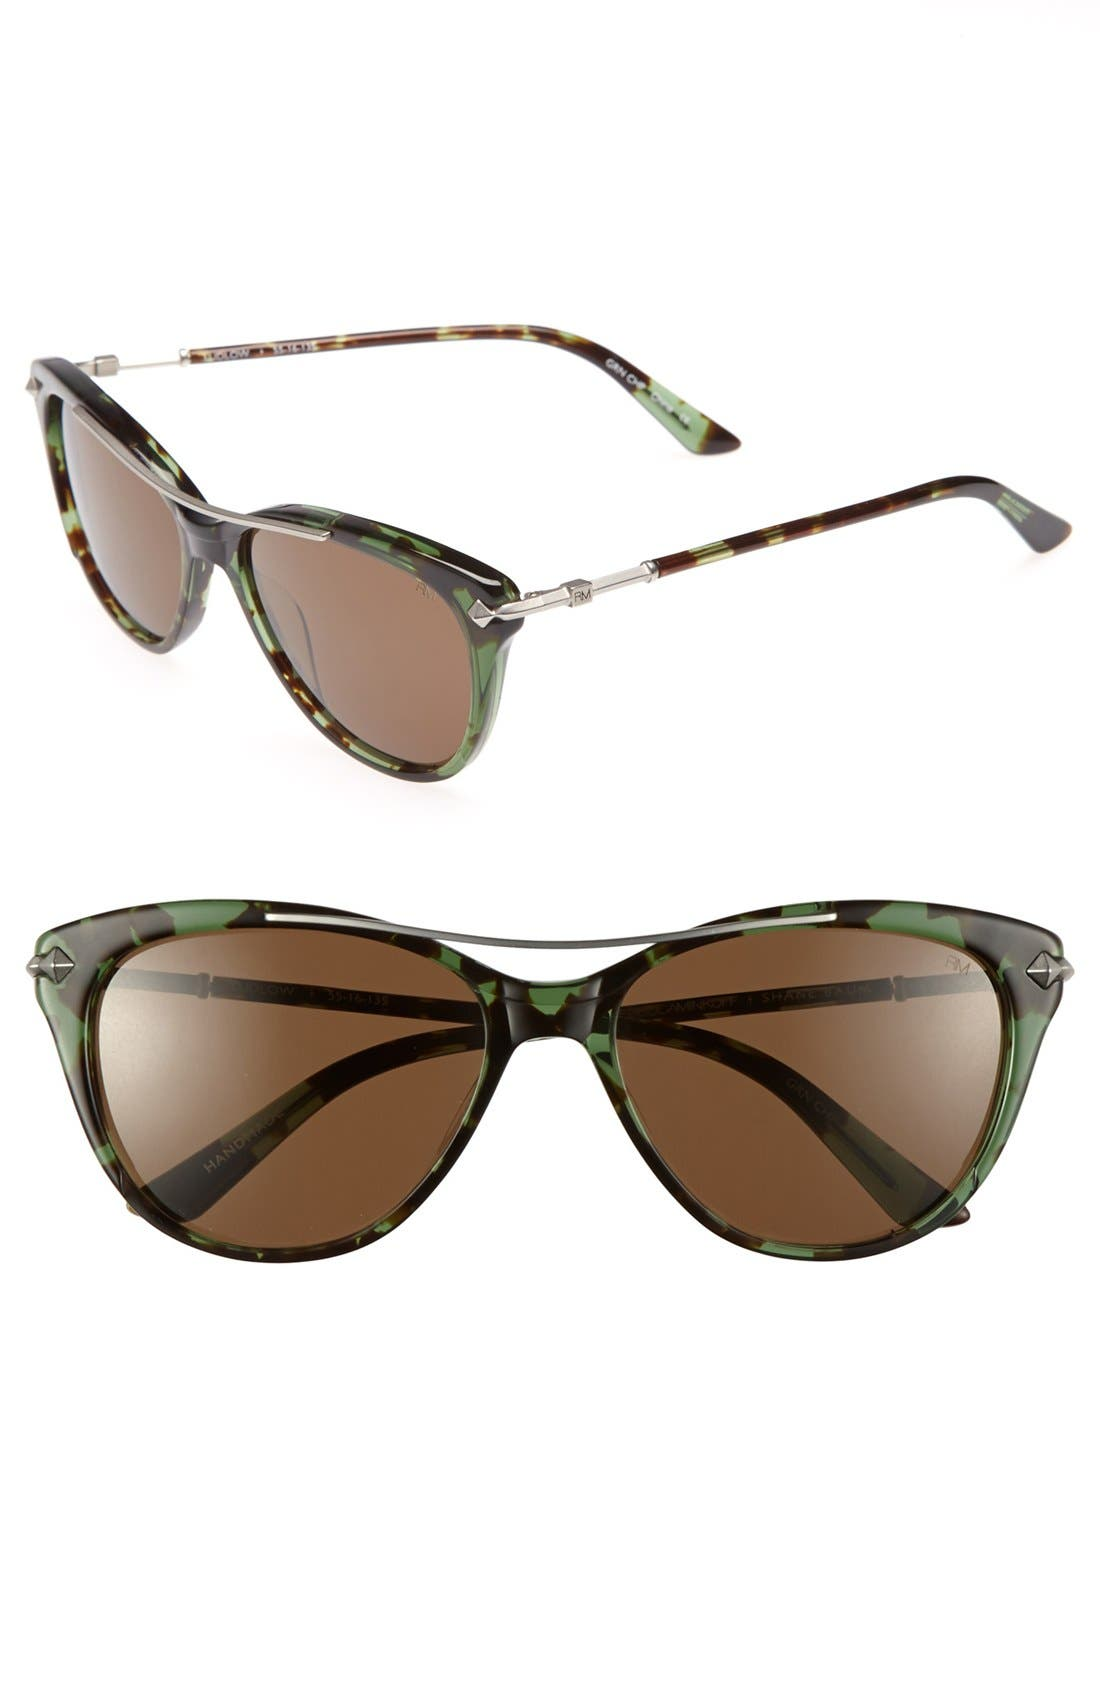 Main Image - Rebecca Minkoff 'Ludlow' 55mm Sunglasses